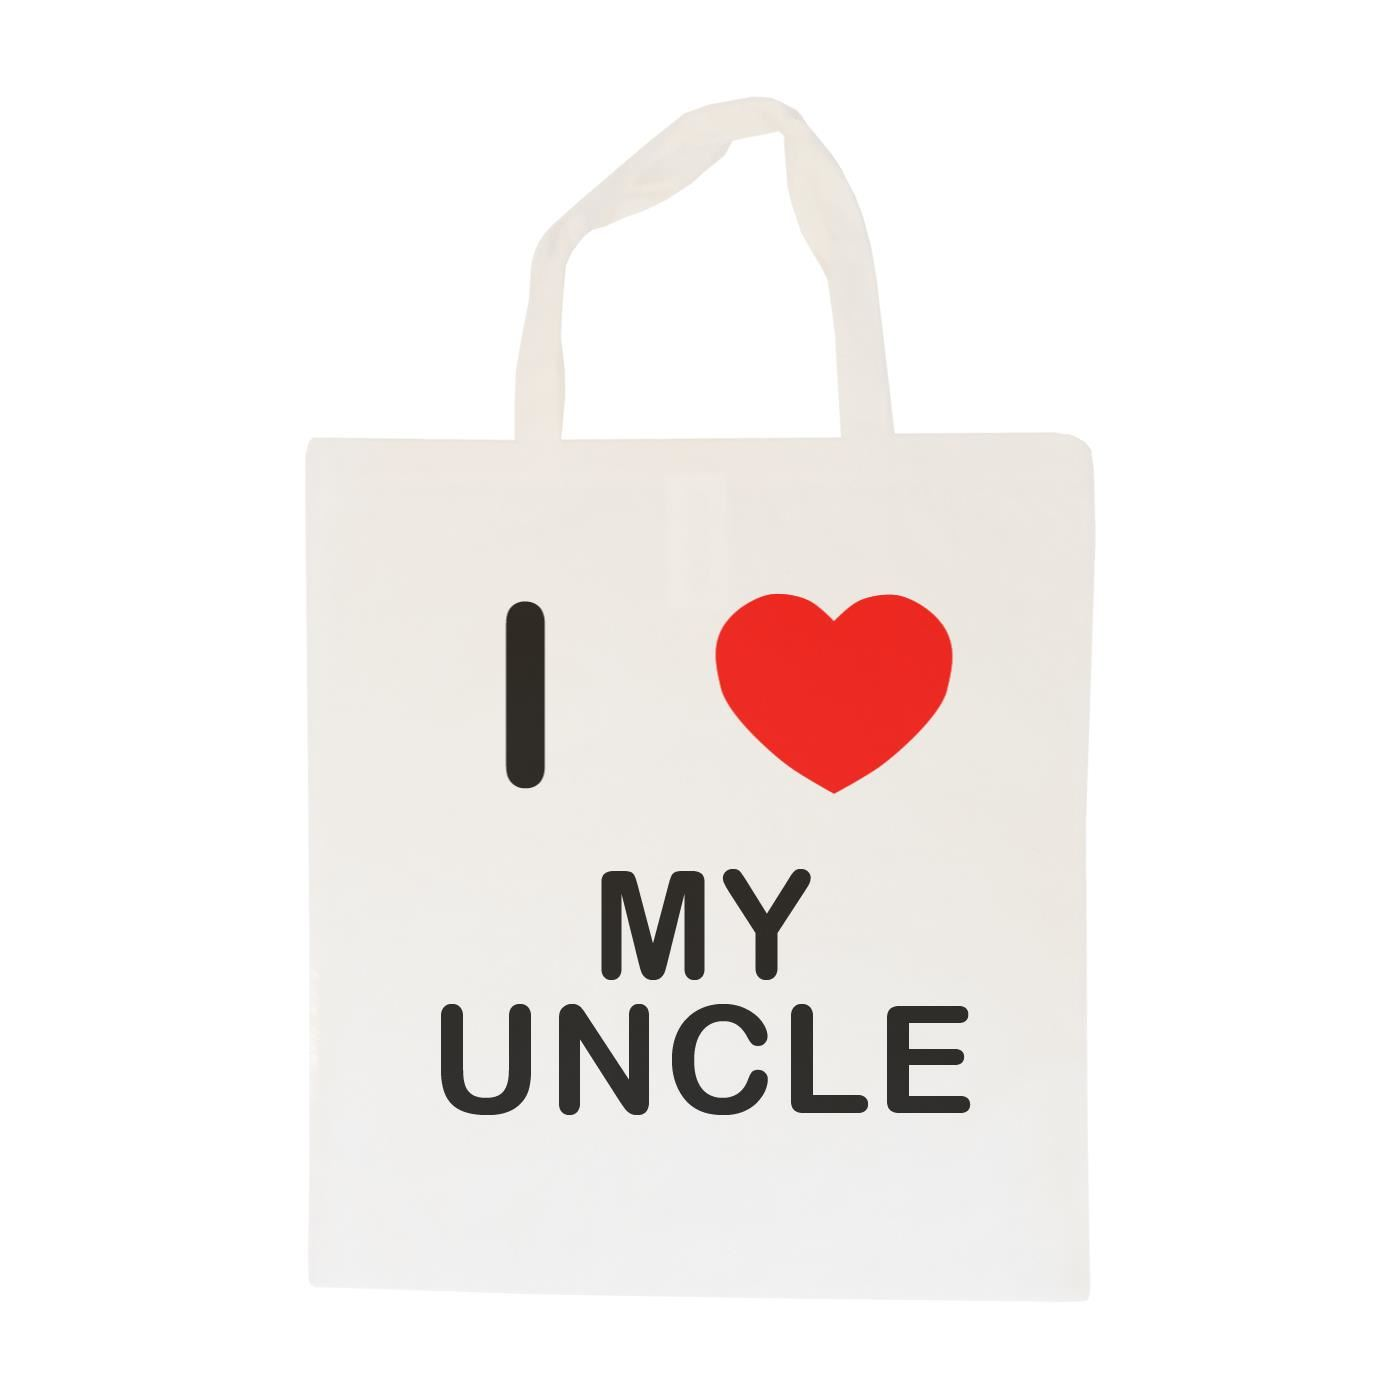 I Love My Uncle - Cotton Bag | Size choice Tote, Shopper or Sling